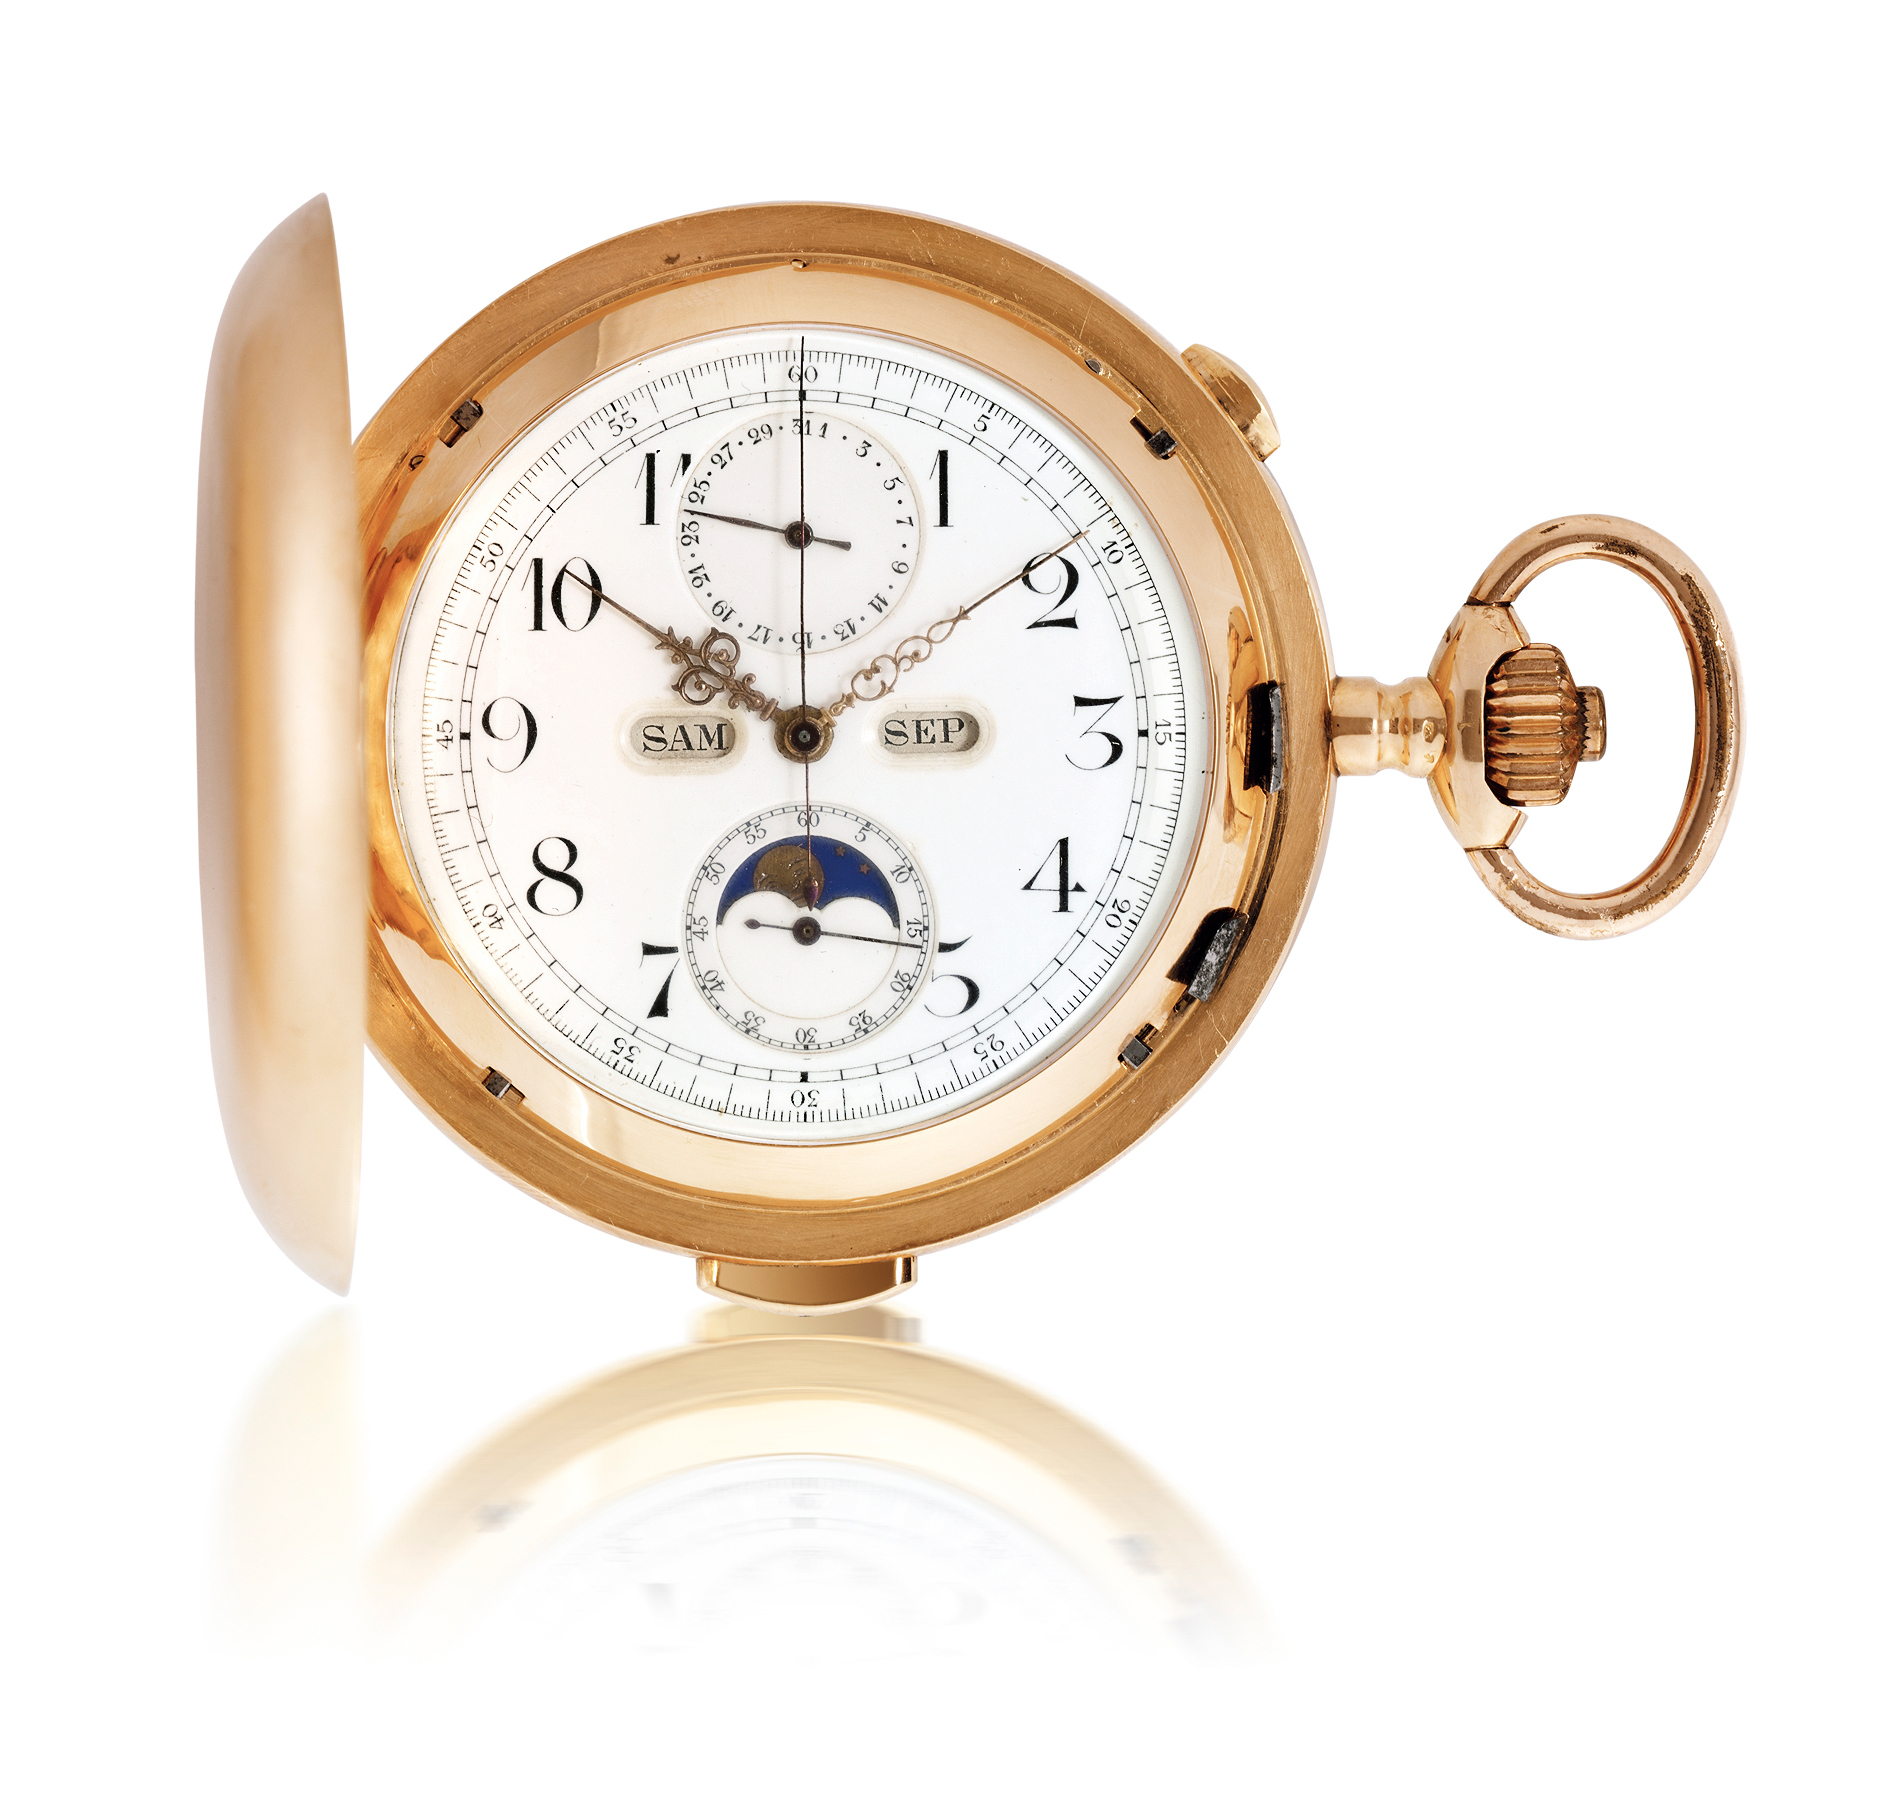 VOLTA  YELLOW GOLD MINUTE REPEATING TRIPLE CALENDAR CHRONOGRAPH HUNTER CASE KEYLESS LEVER POCKET WATCH WITH MOON PHASES